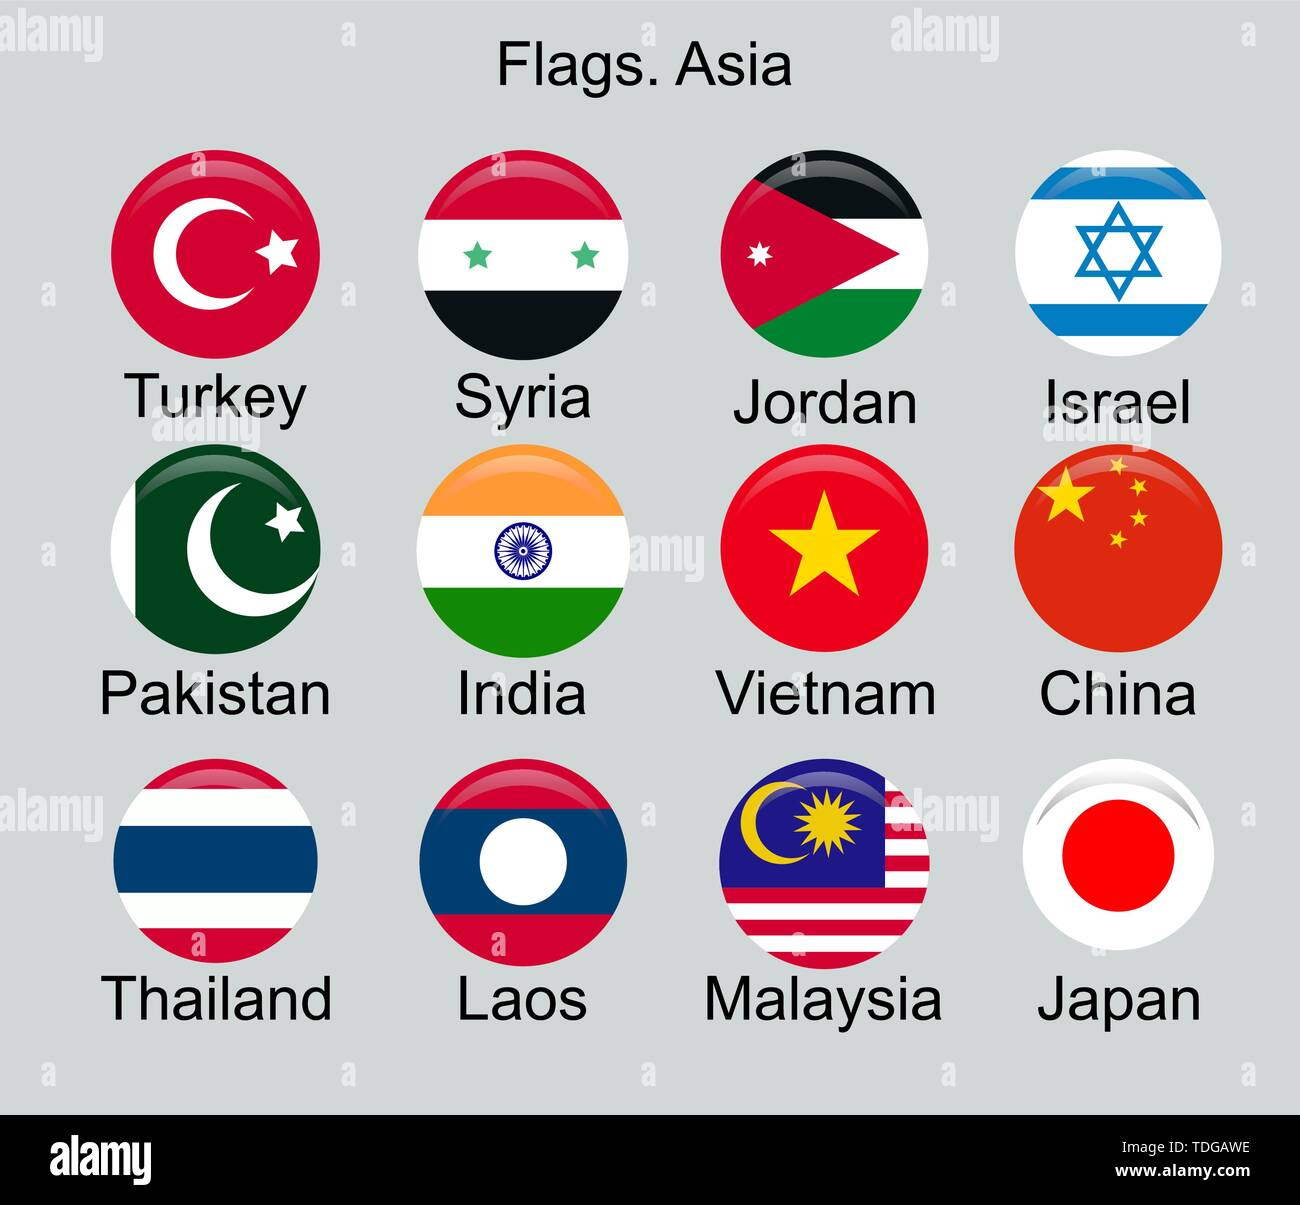 Flags of Asian Countries. Turkey, Pakistan, Syria, India, China, Japan, Laos, Thailand, Israel, and others. - Stock Vector